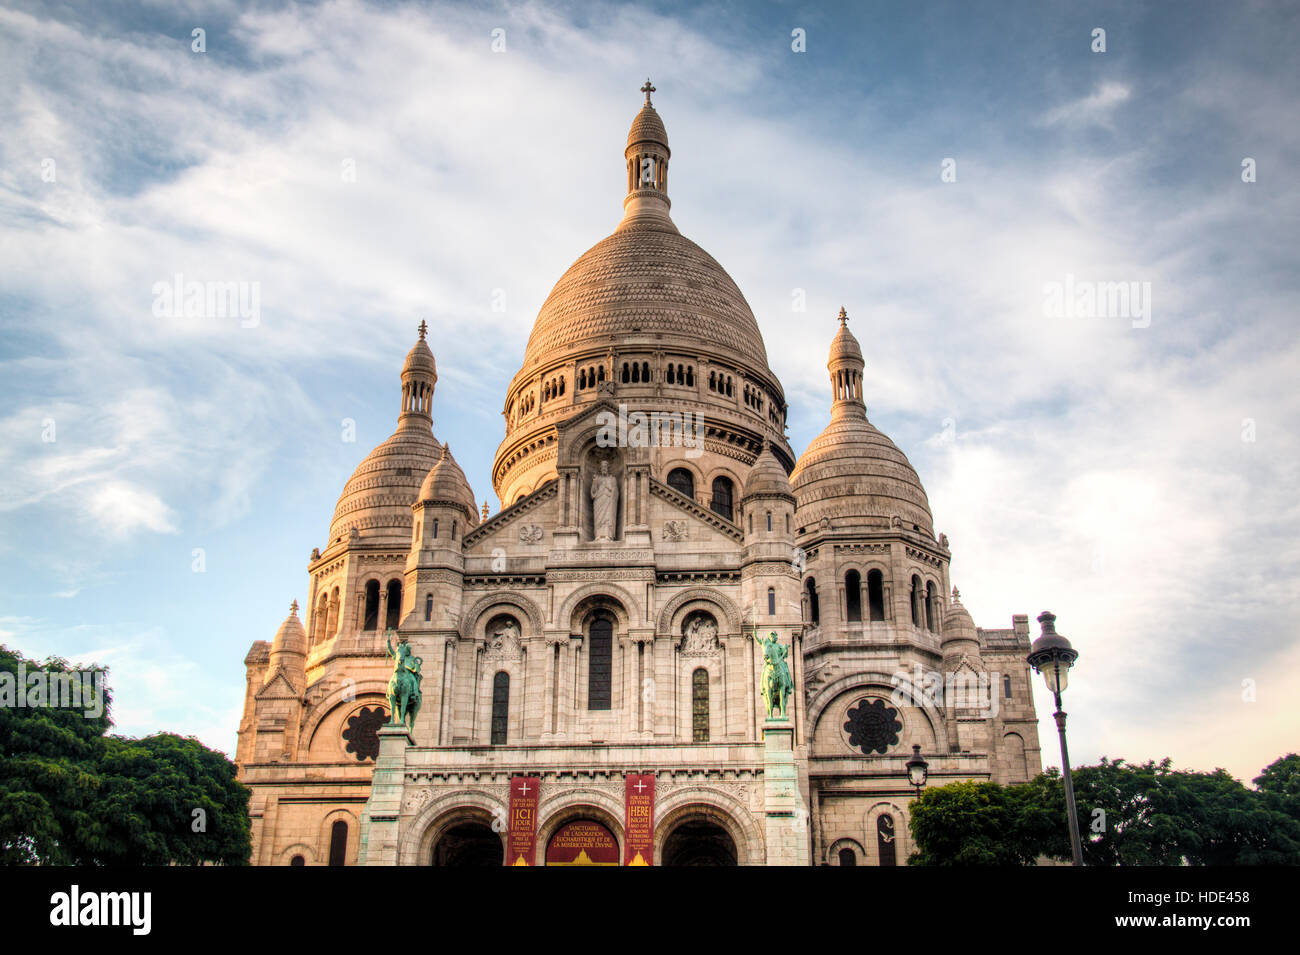 View of the Sacre Coeur church on top of Montmartre in Paris in France - Stock Image